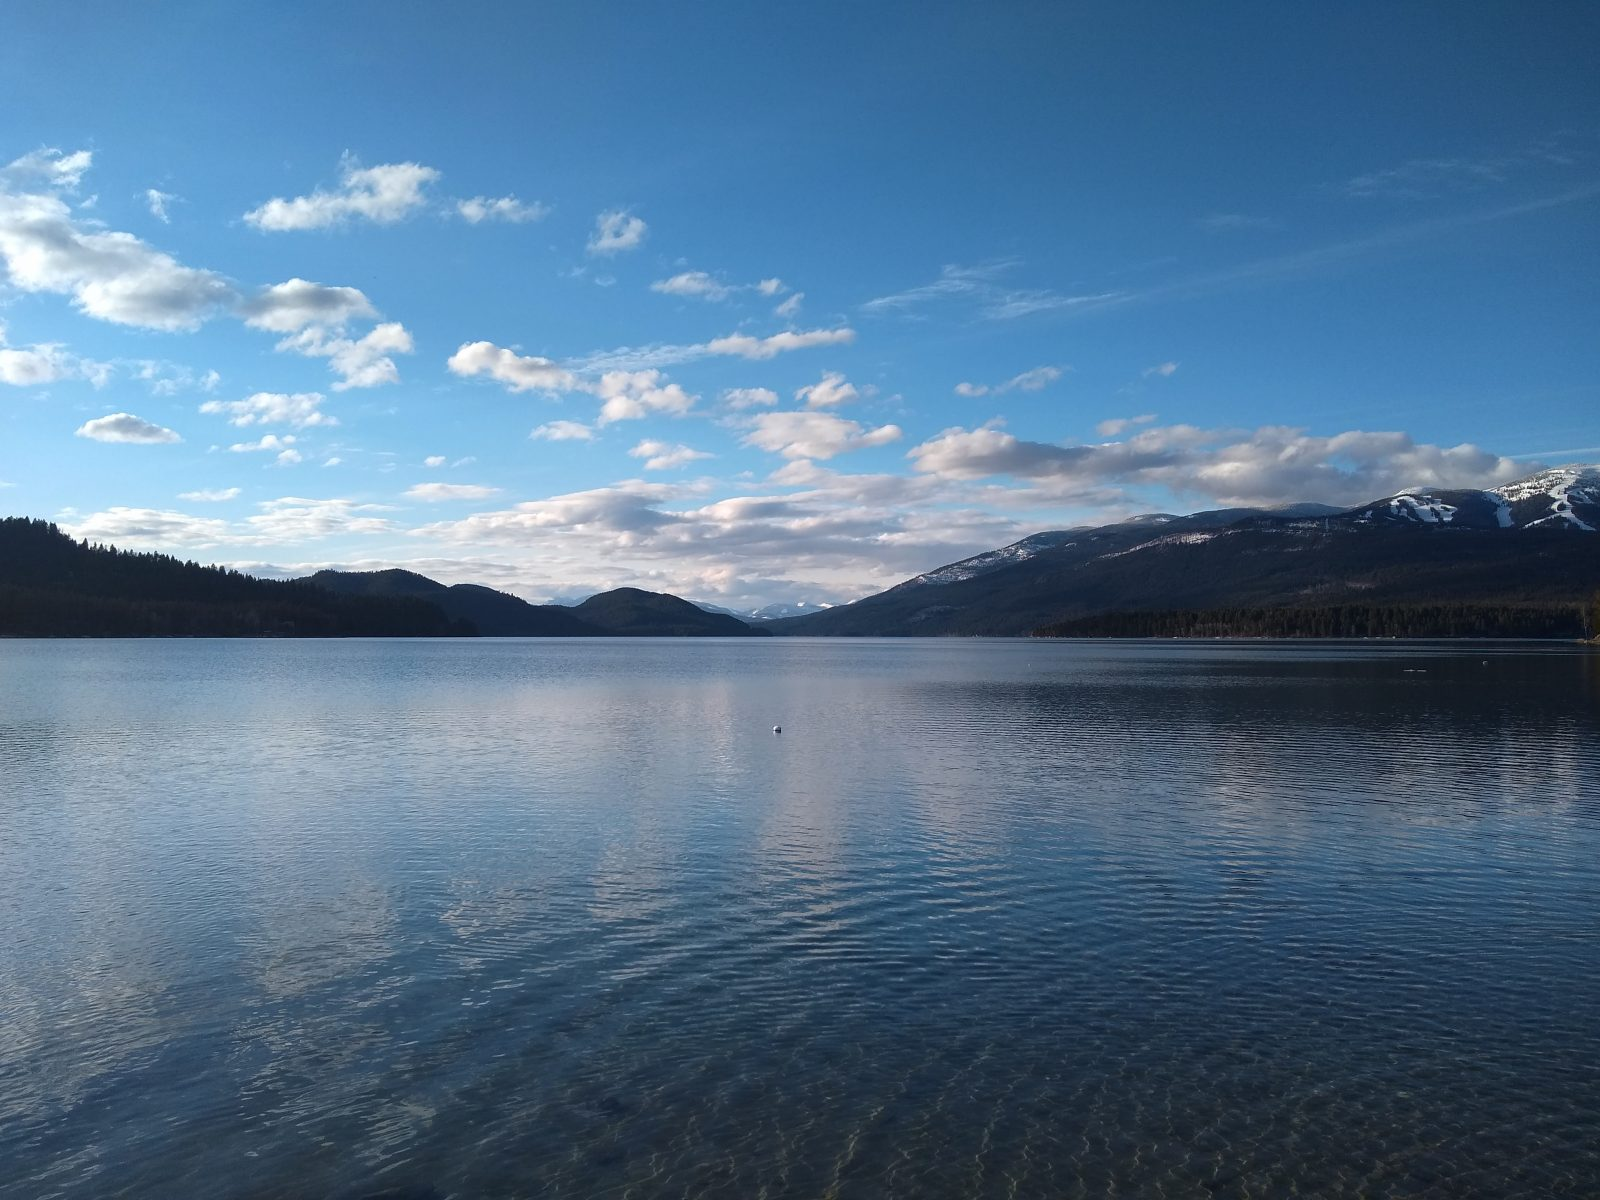 Whitefish Lake - April 4, 2020